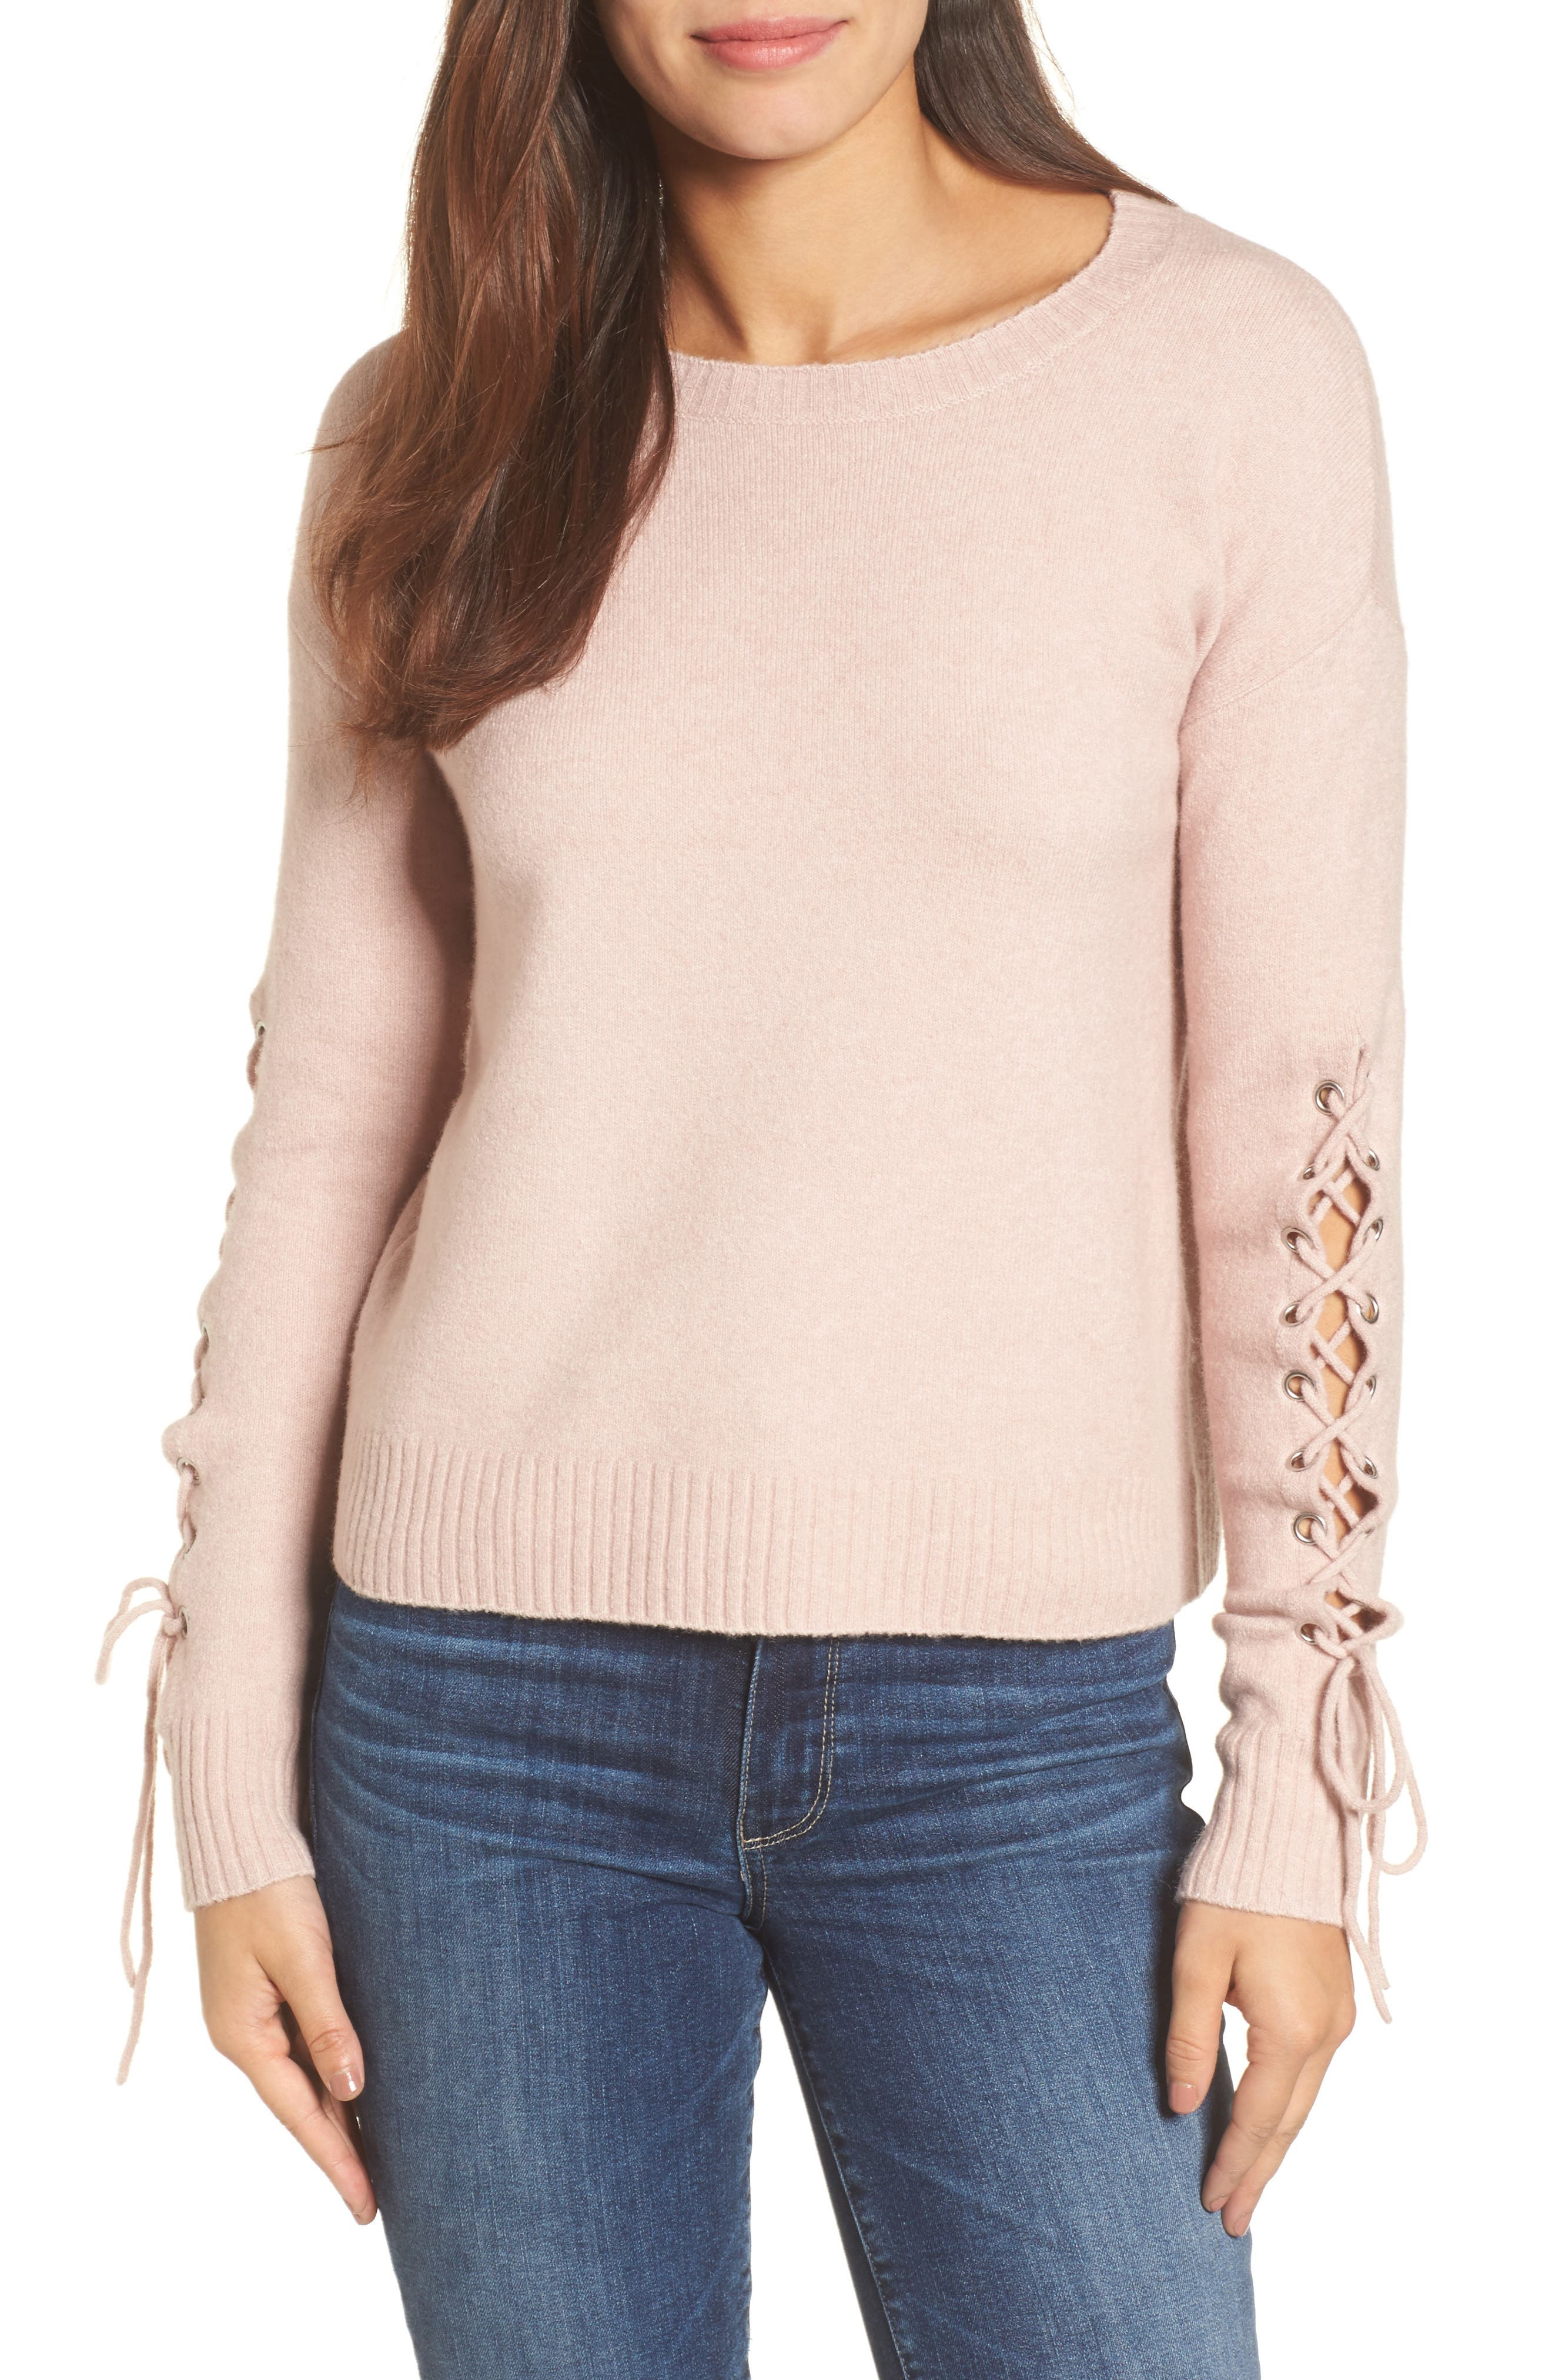 Alternate Image 1 Selected - Halogen® Lace-Up Sleeve Sweater